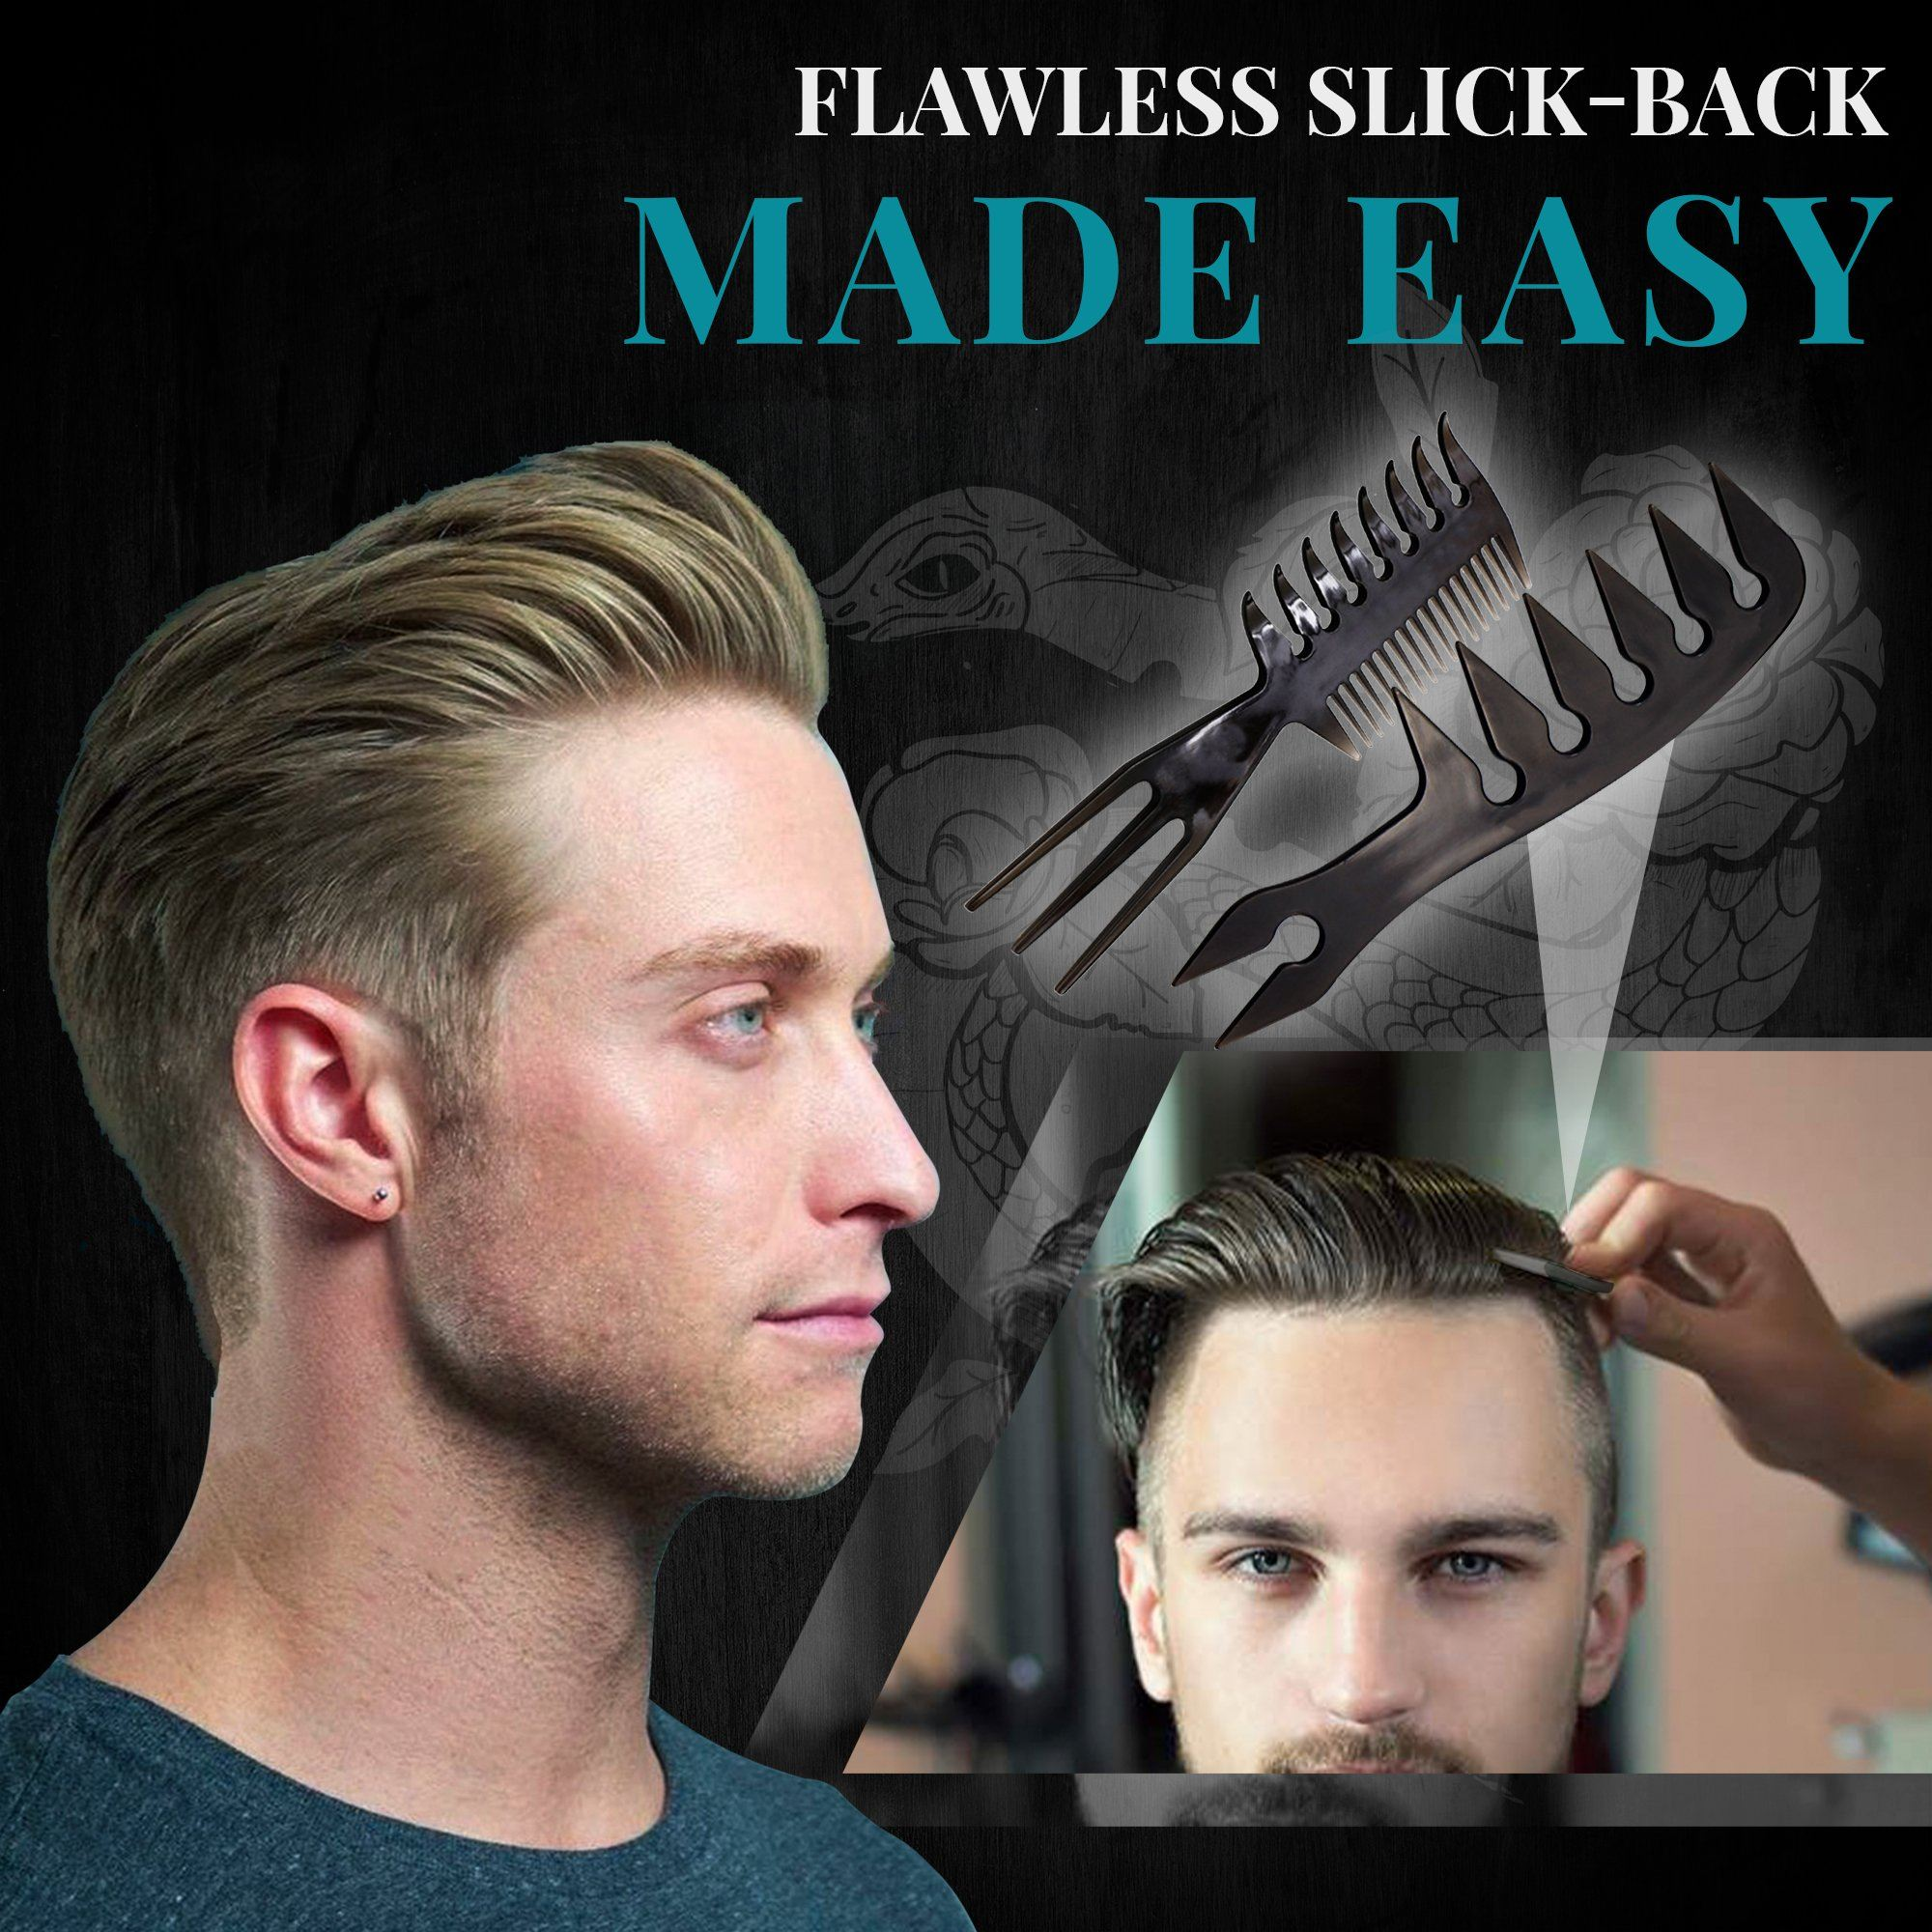 Professional Slick-back Grooming Comb